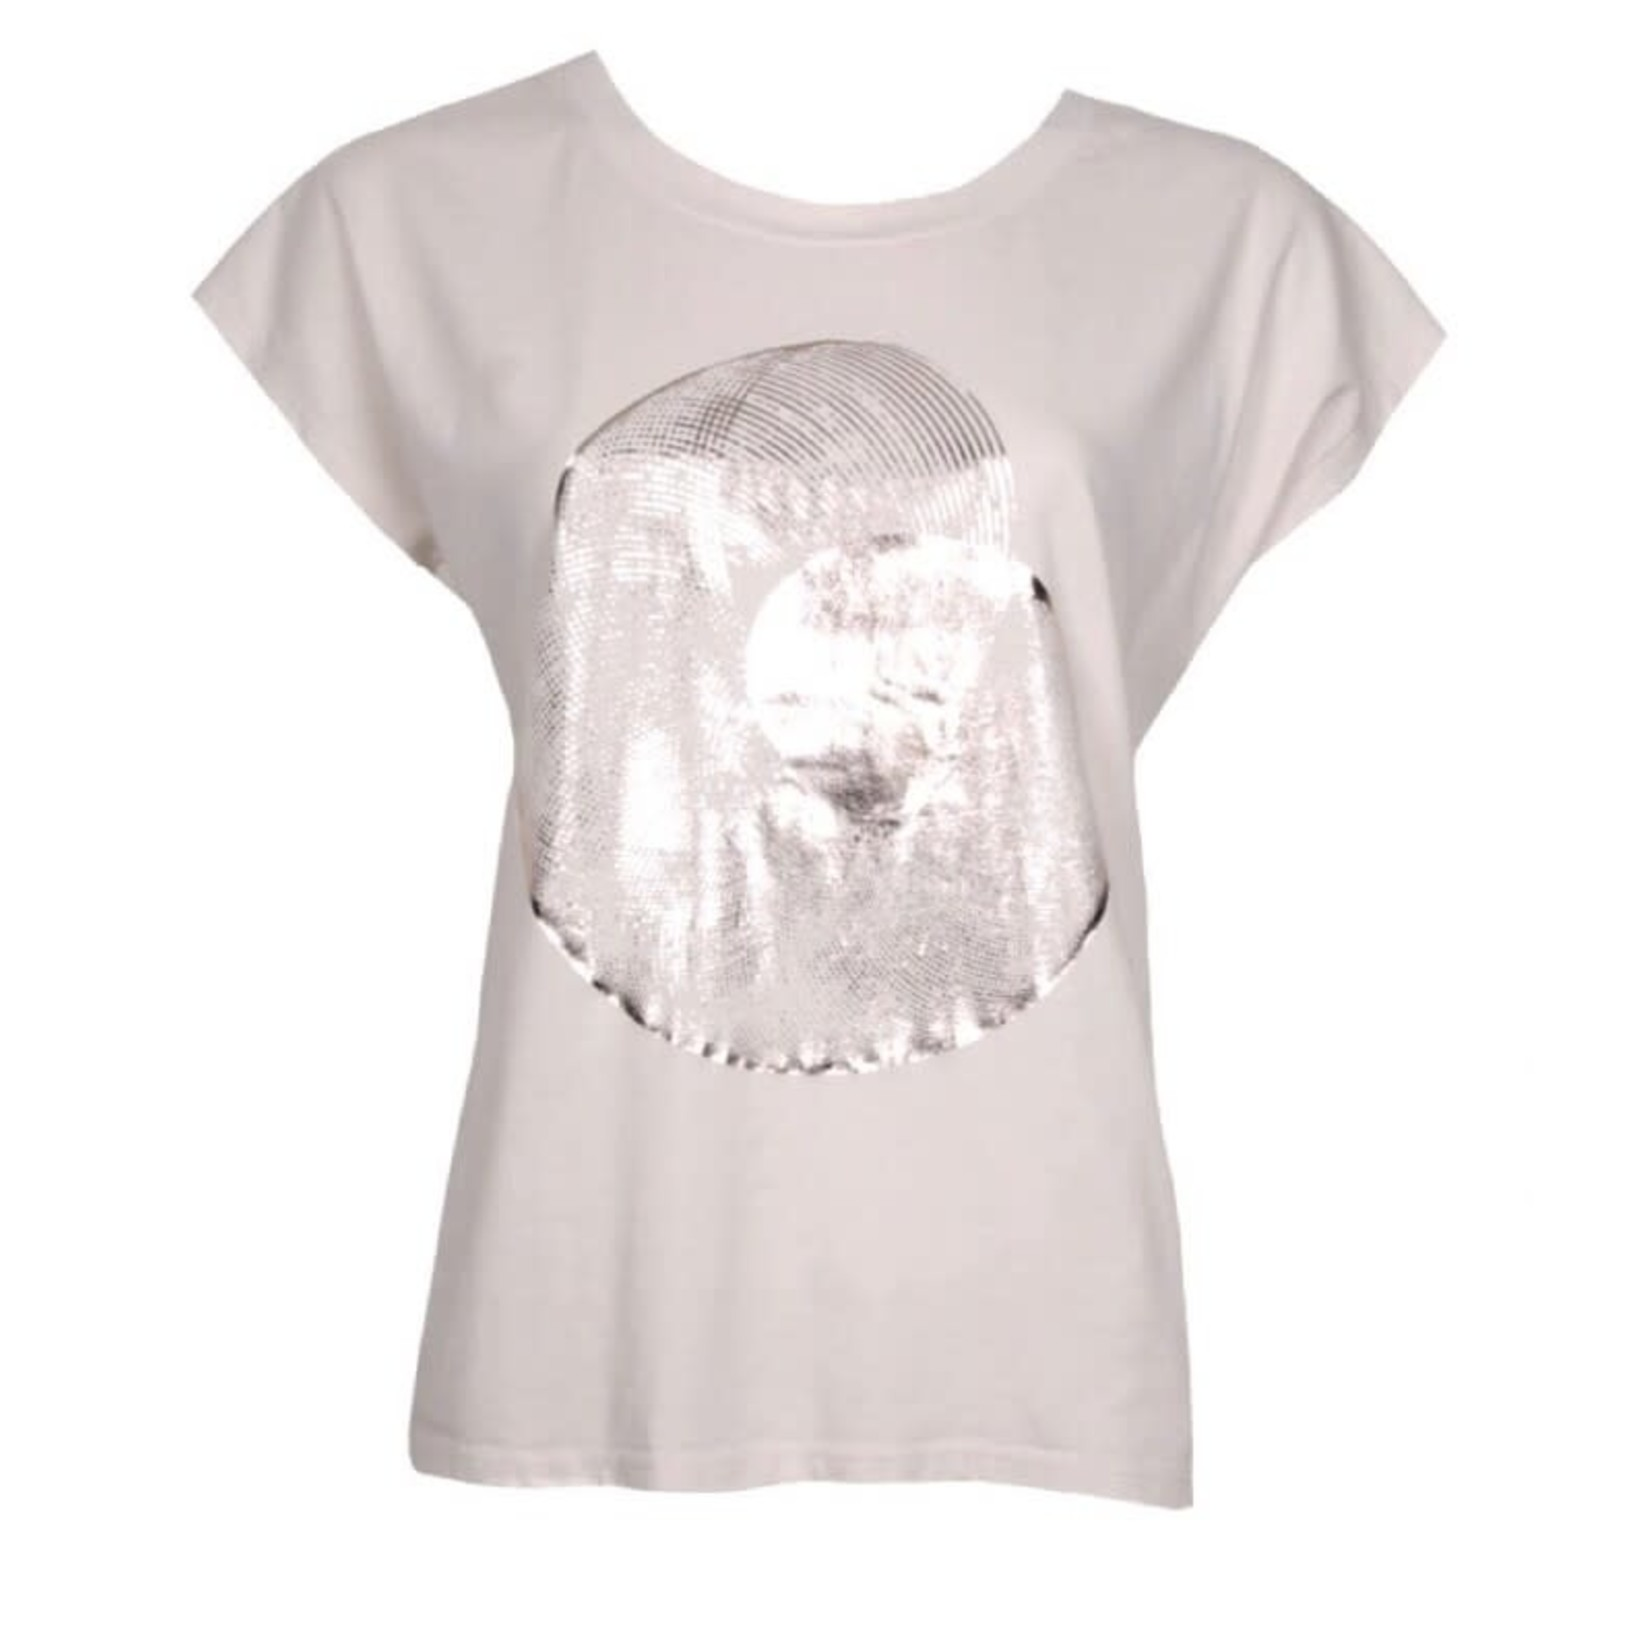 20 to 20 to t shirt shell 21SS104-004